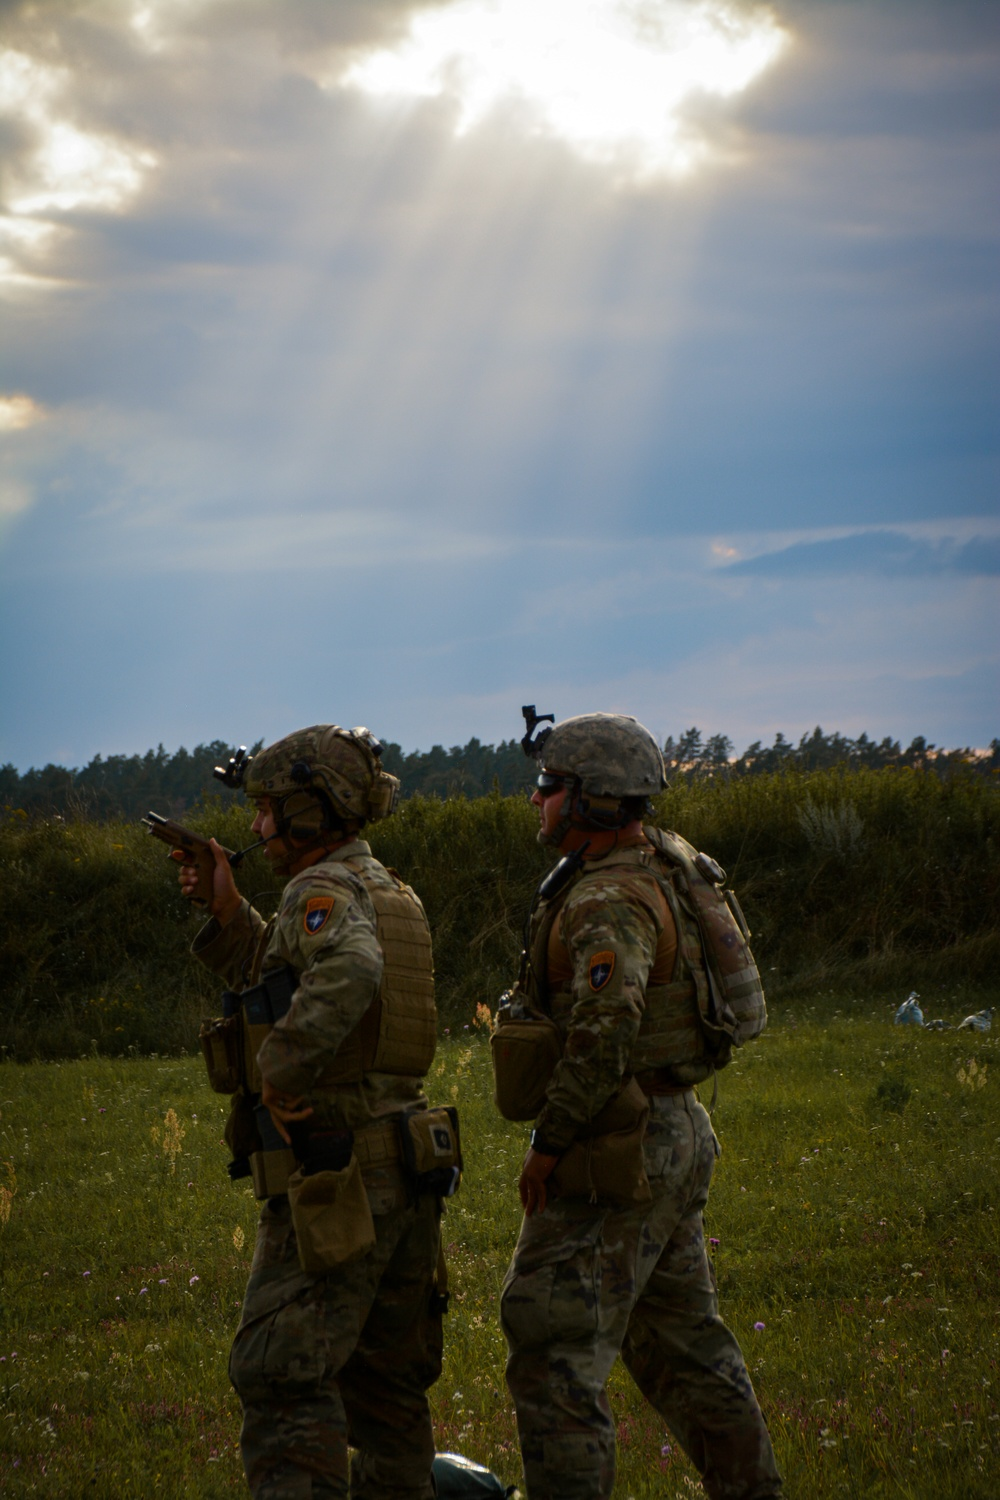 U.S. Army Soldiers find a sunbreak during pistol training.